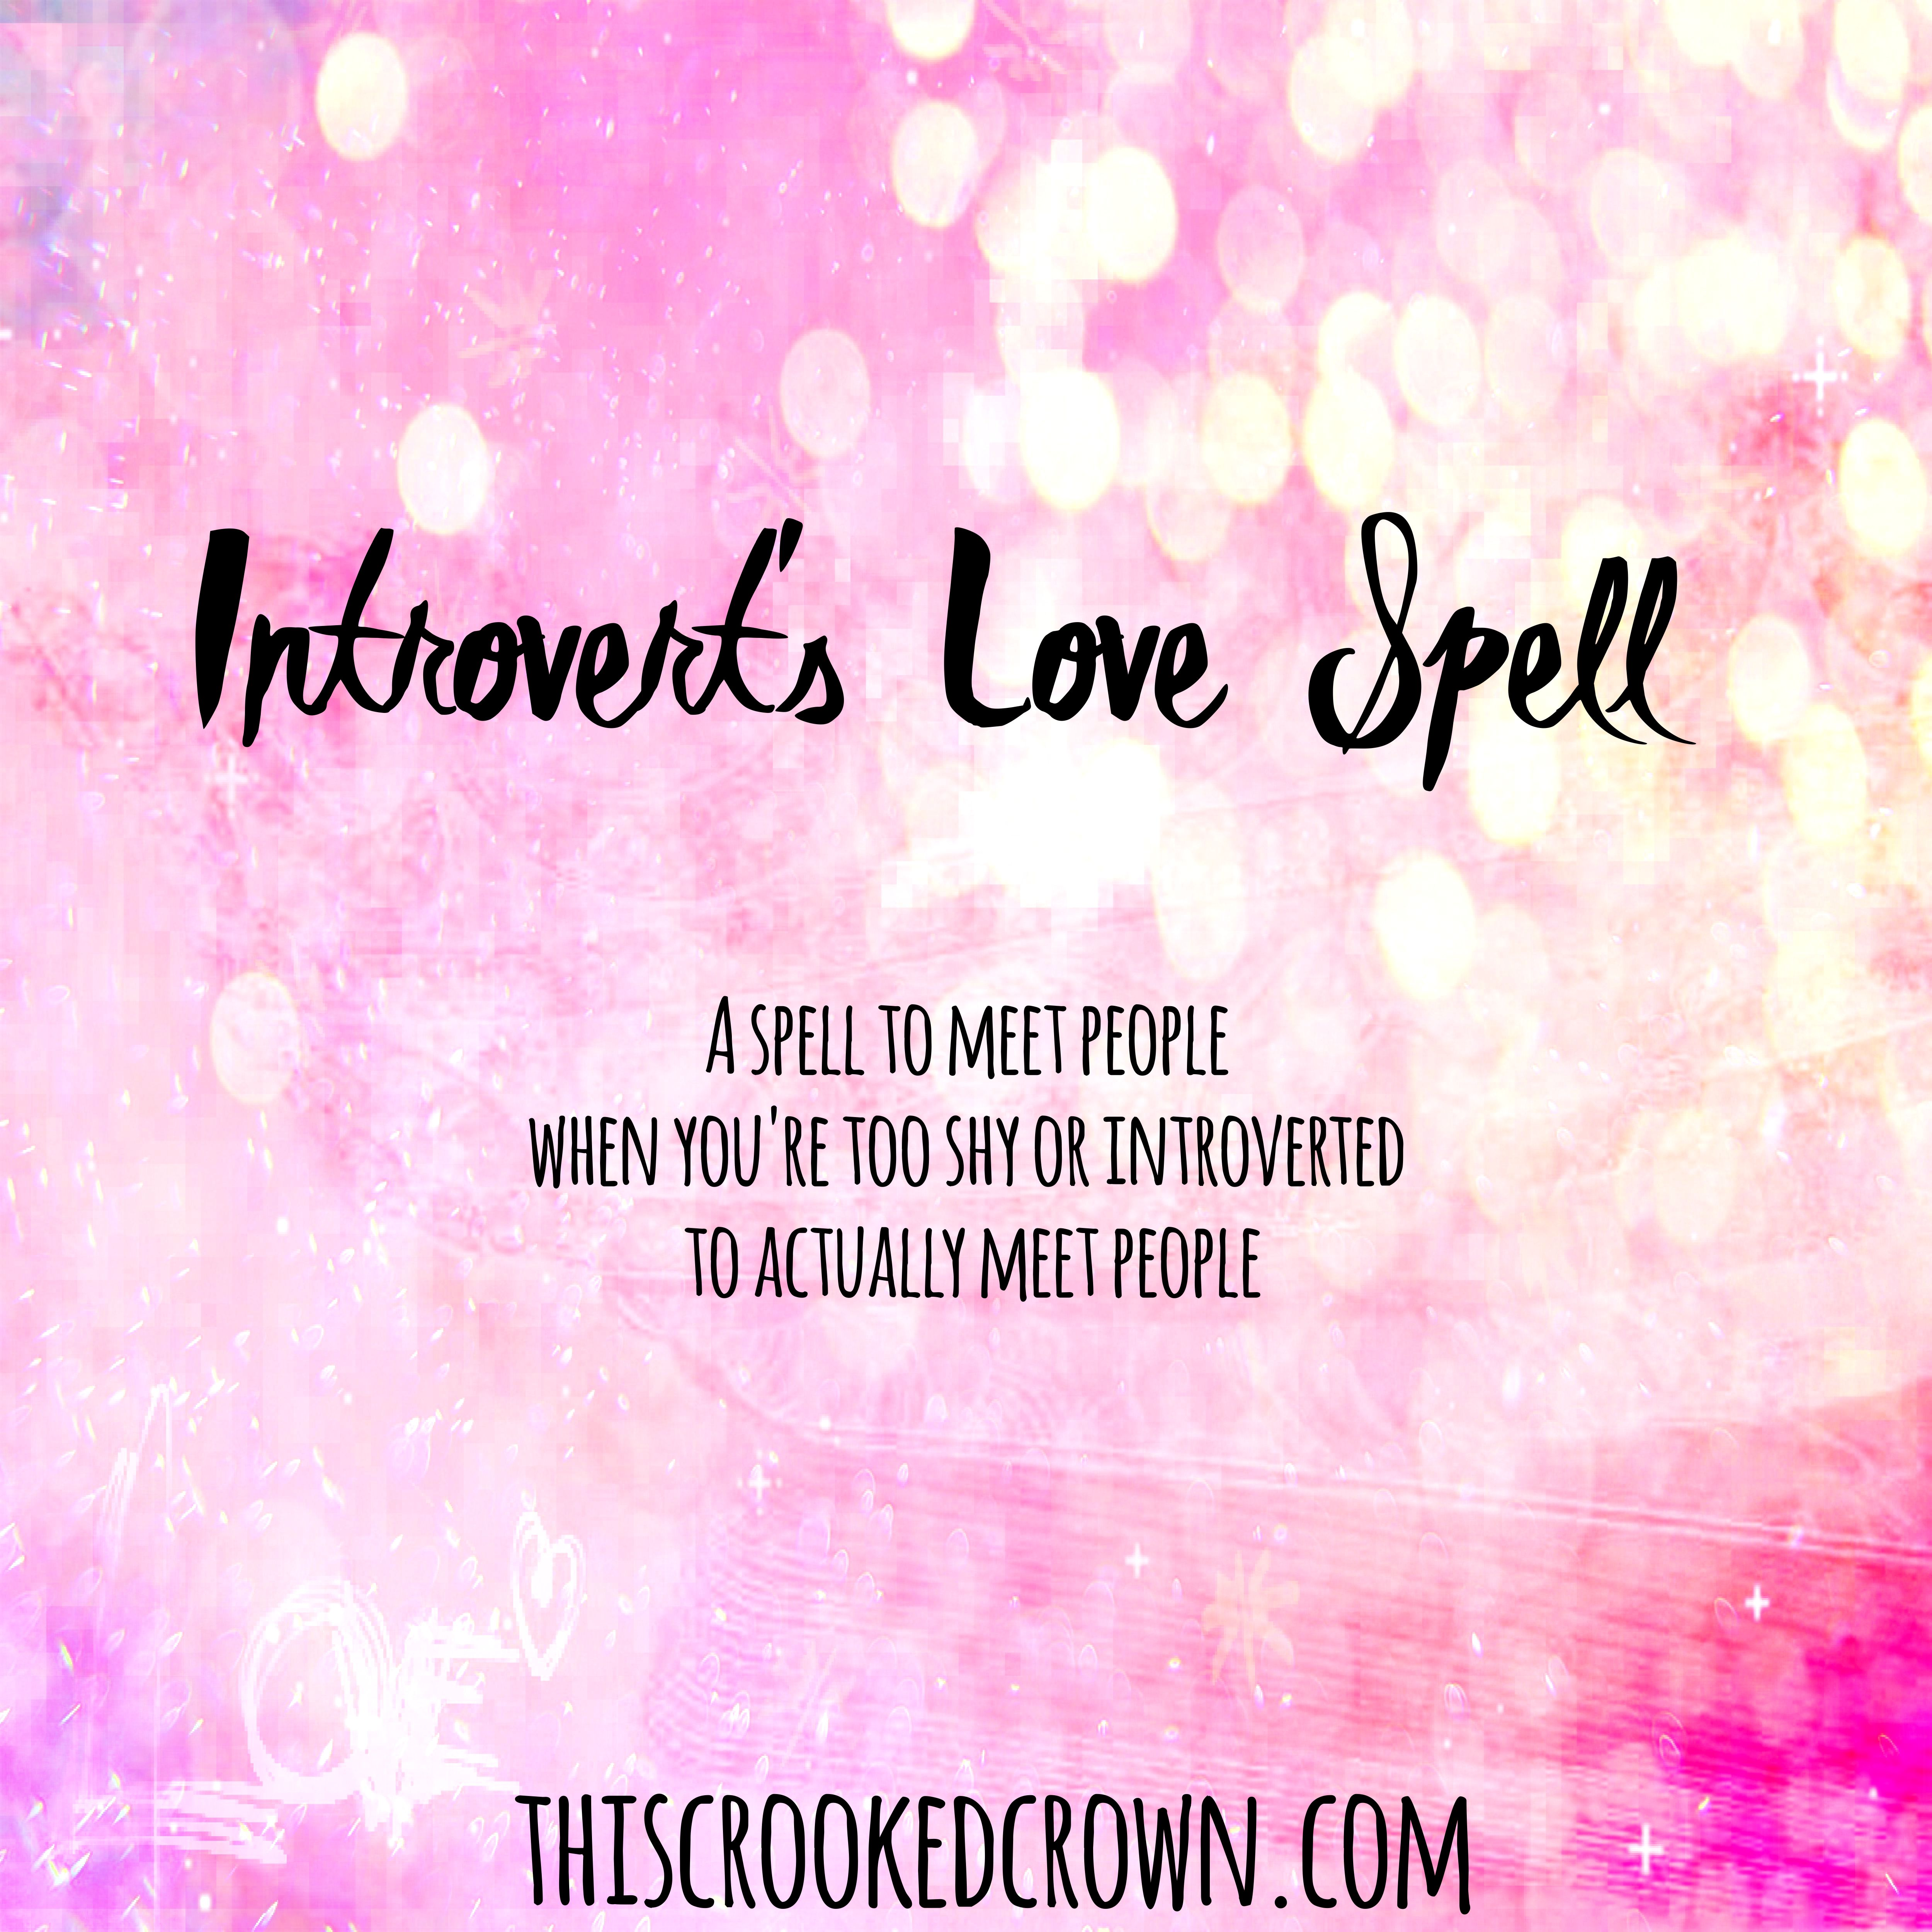 Introvert's Love Spell – This Crooked Crown